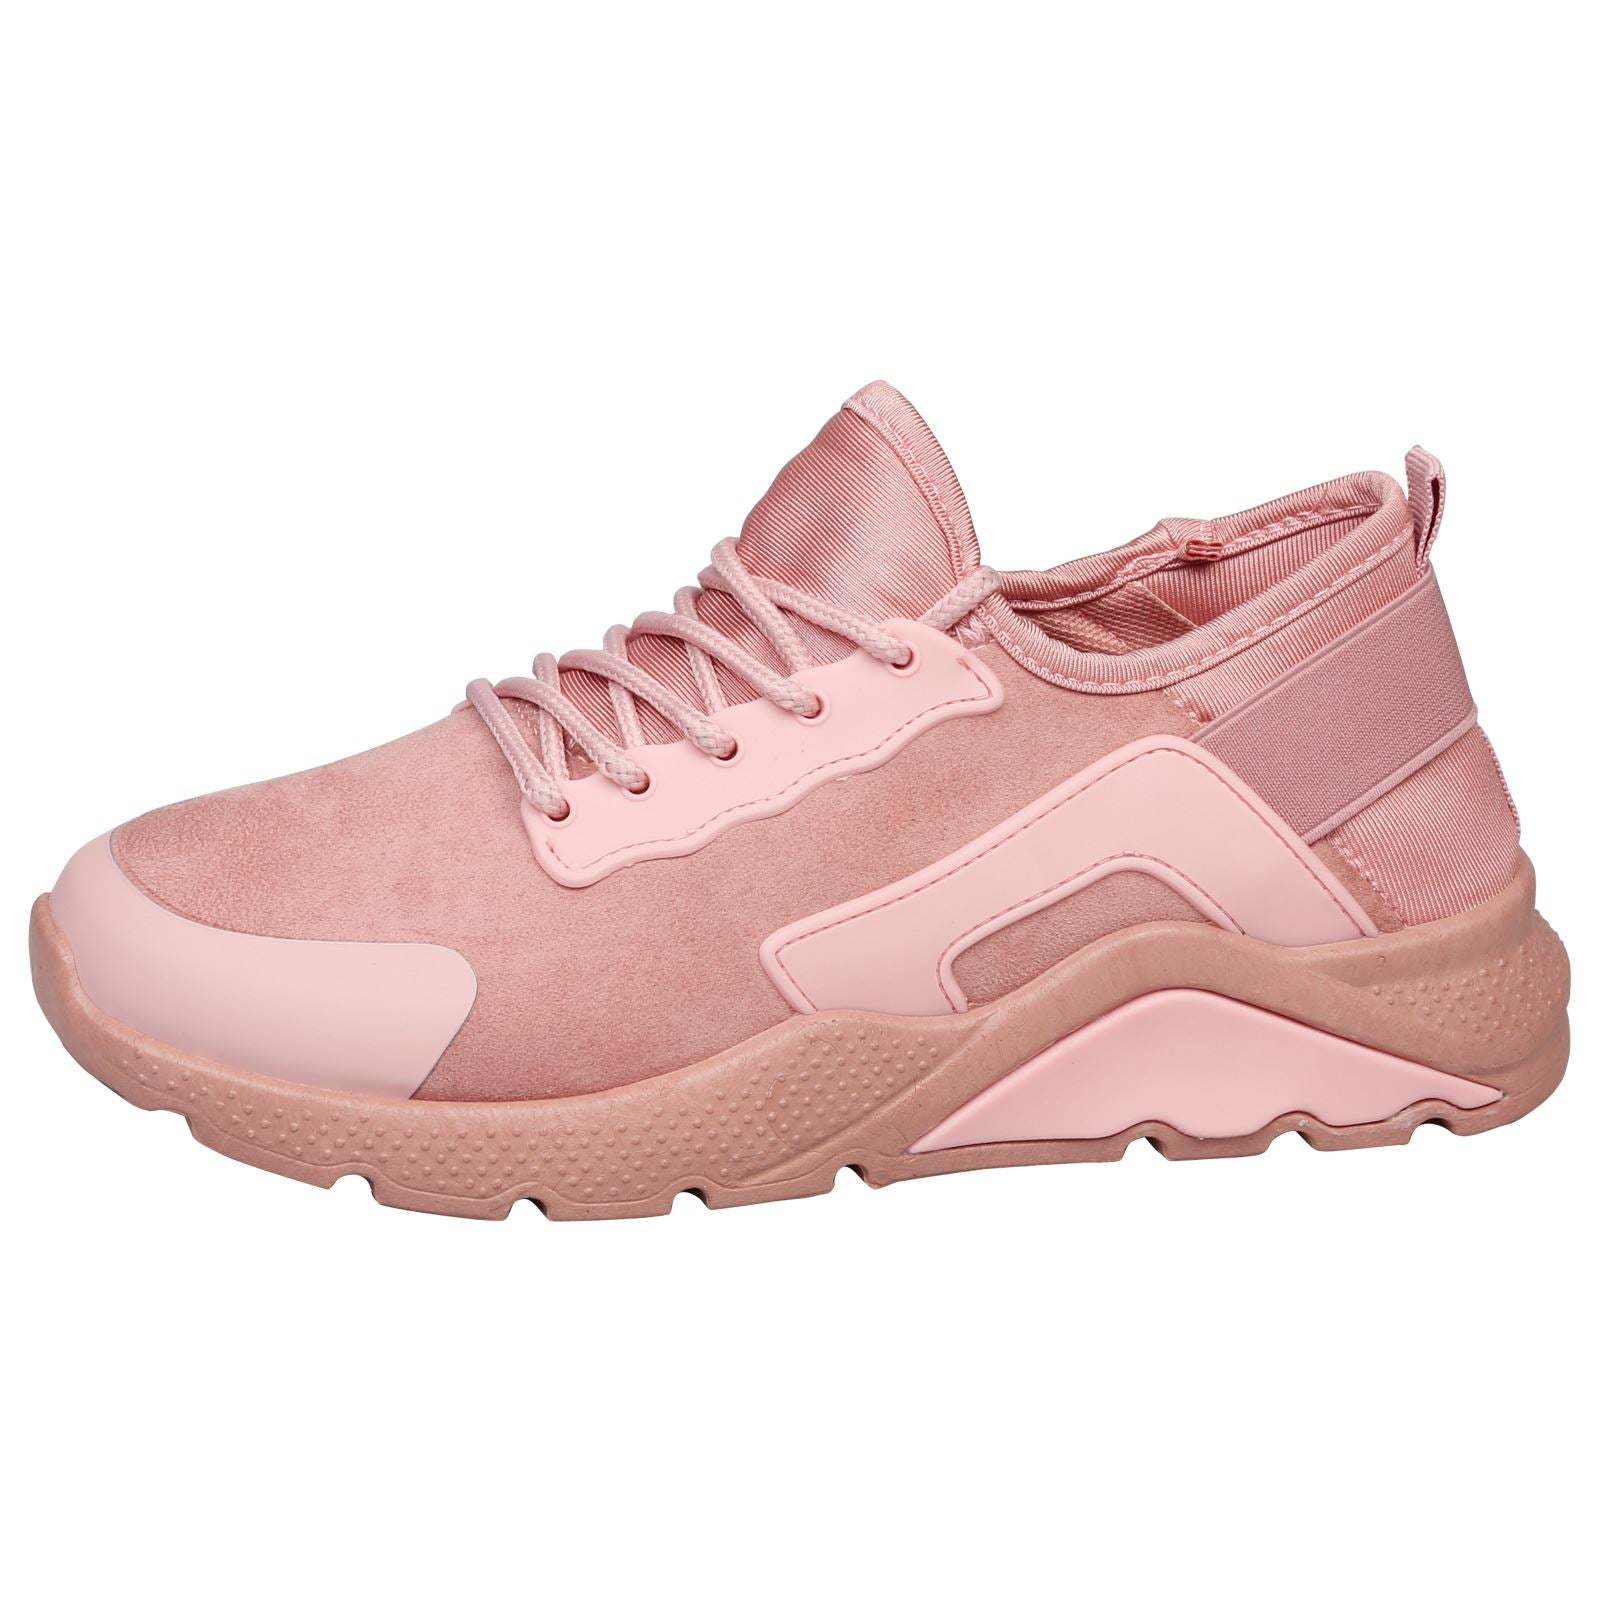 Danica Lace Up Trainers in Pink - Feet First Fashion